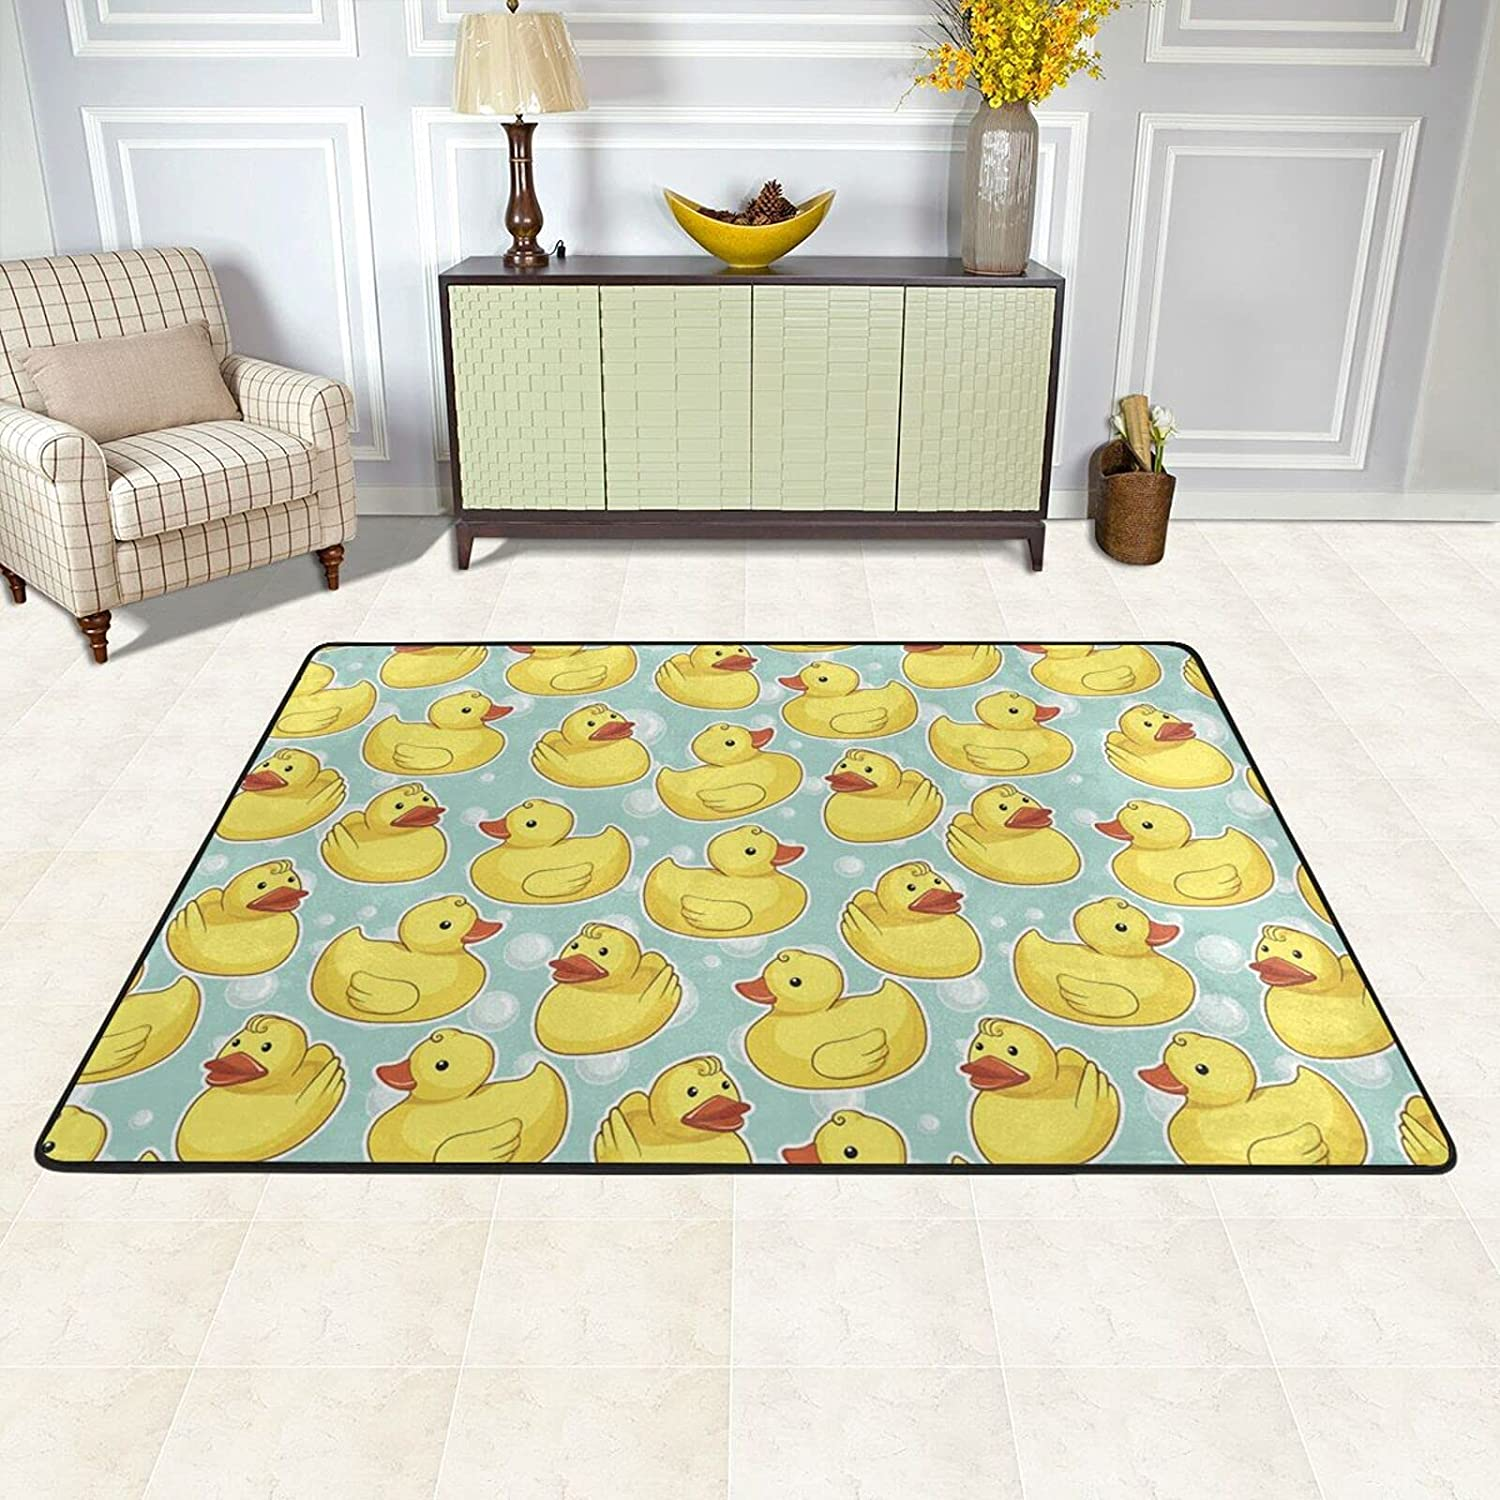 Area Rugs cheap Excellence Pad for Bedroom Living Duck Happy Rubber Room Bubbles